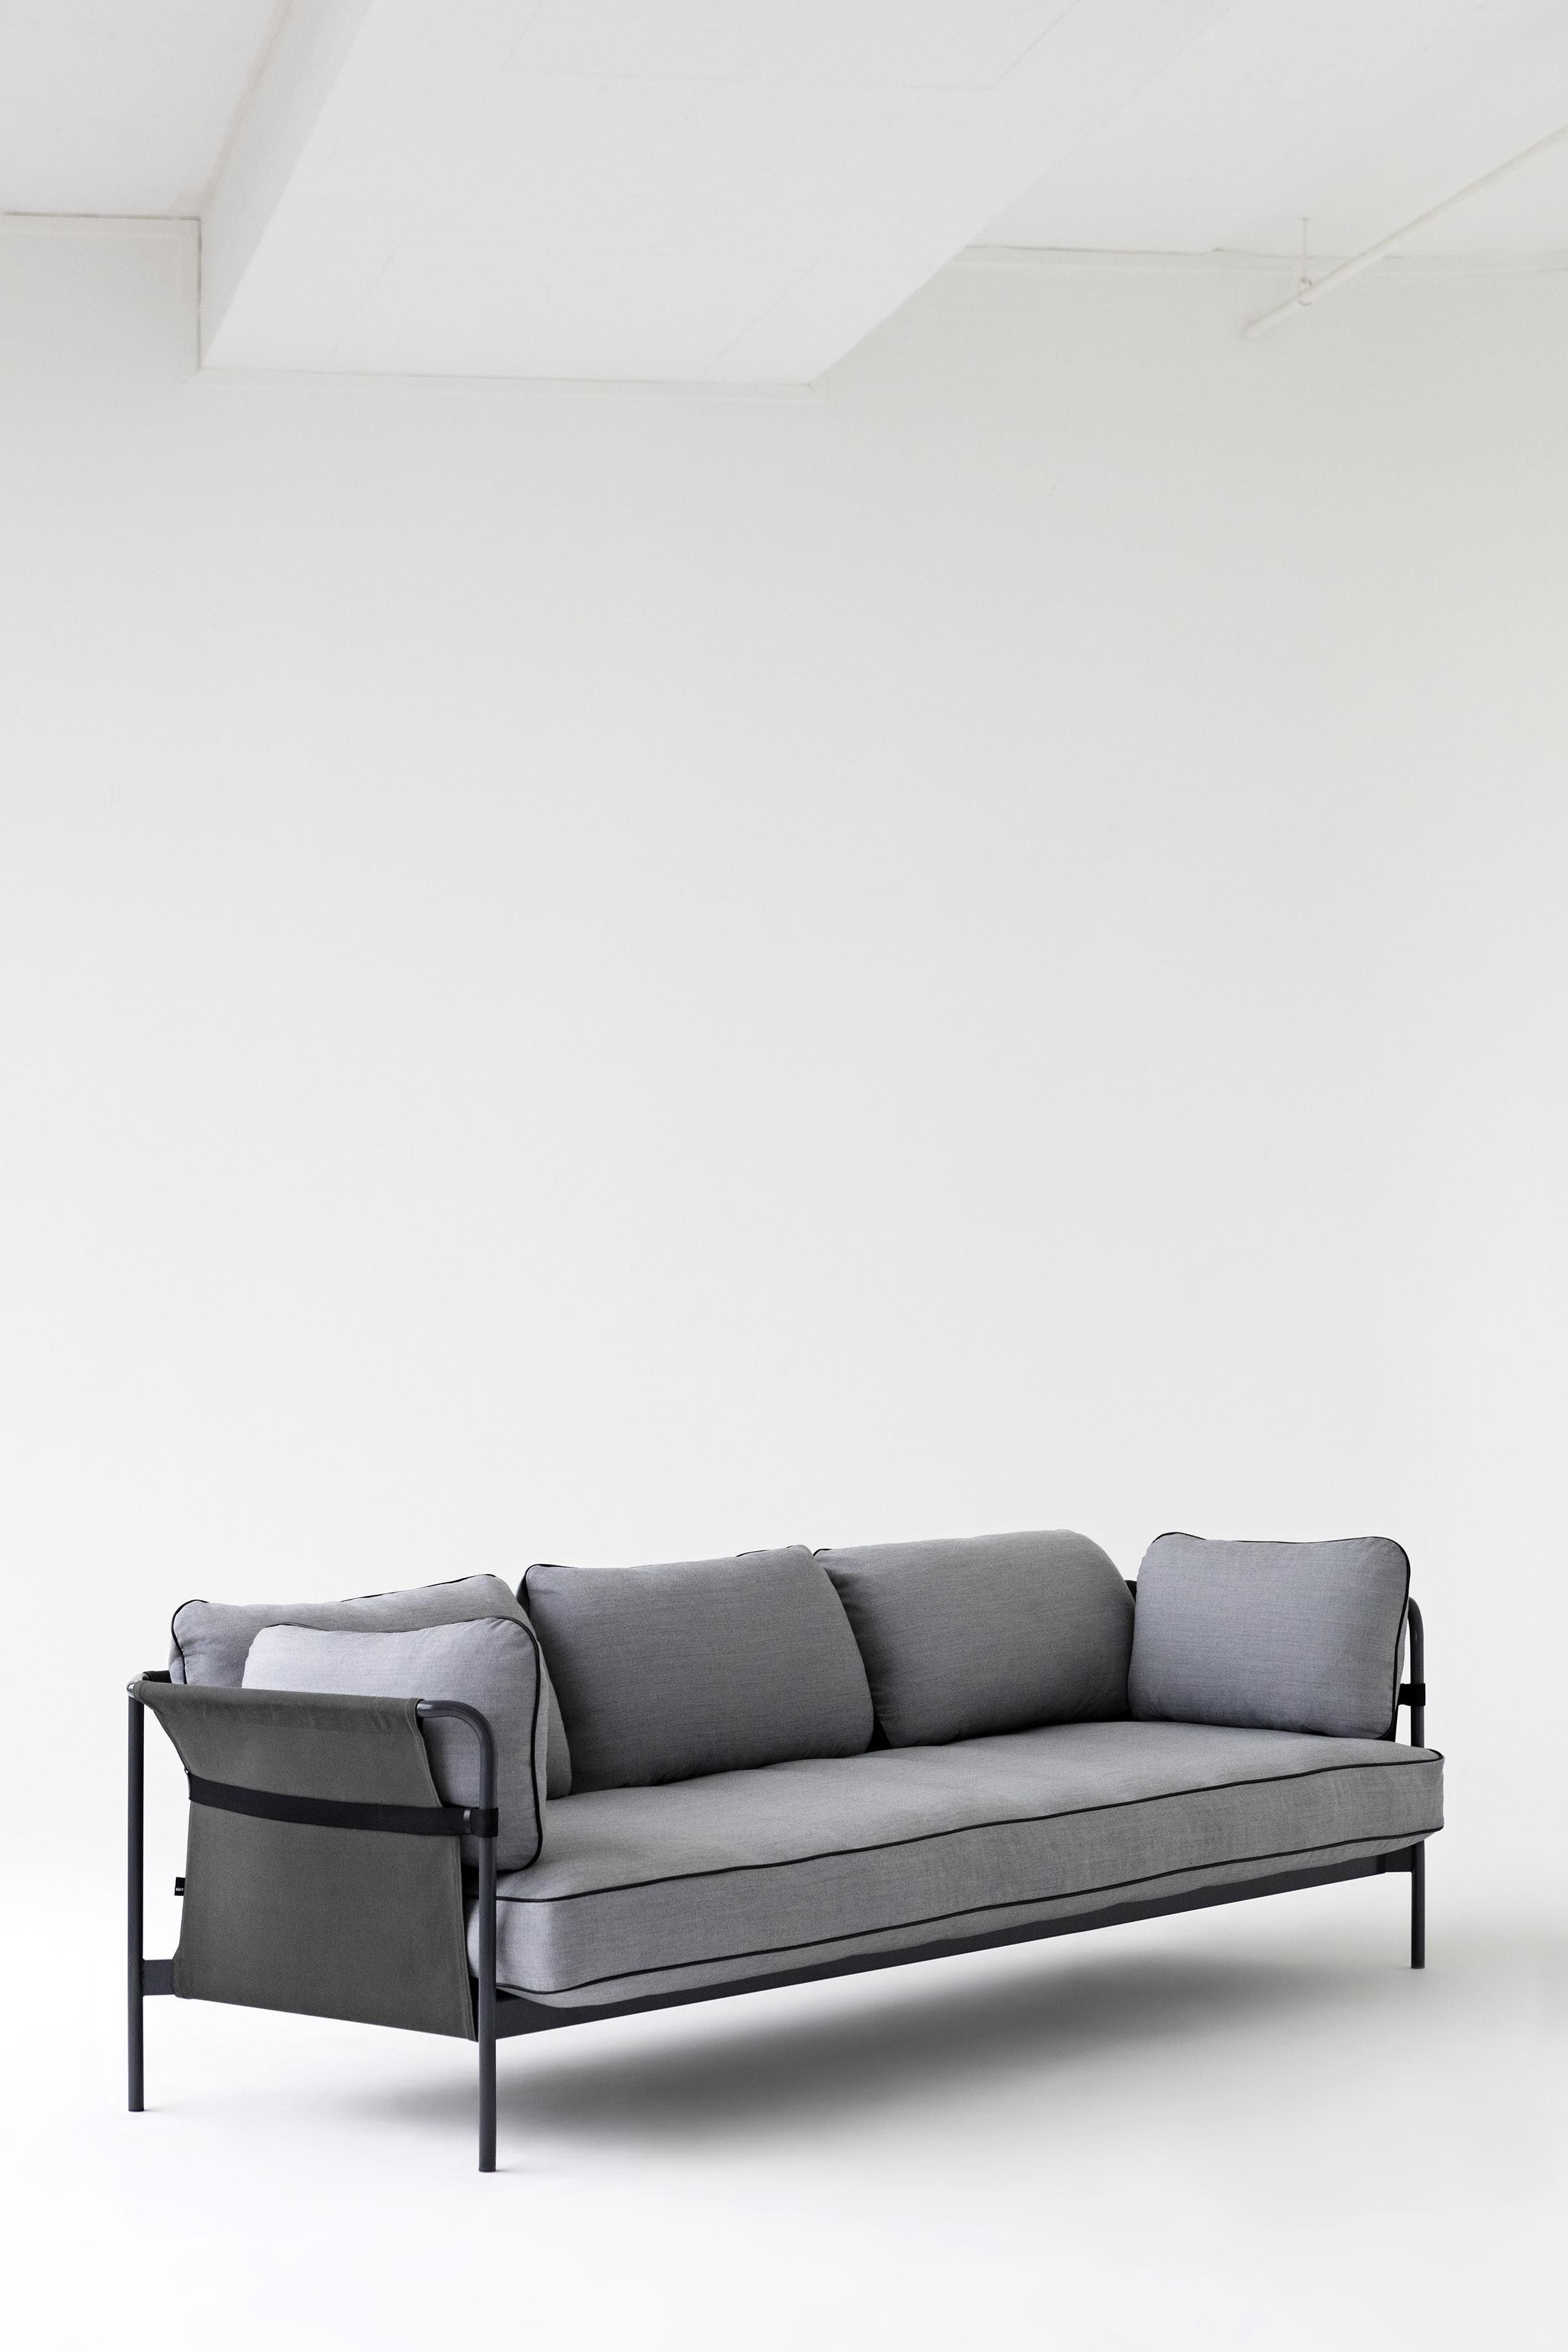 Bouroullec brothers design flat pack Can sofa for Hay s 2016 collection Furniture Seating3 Pinterest